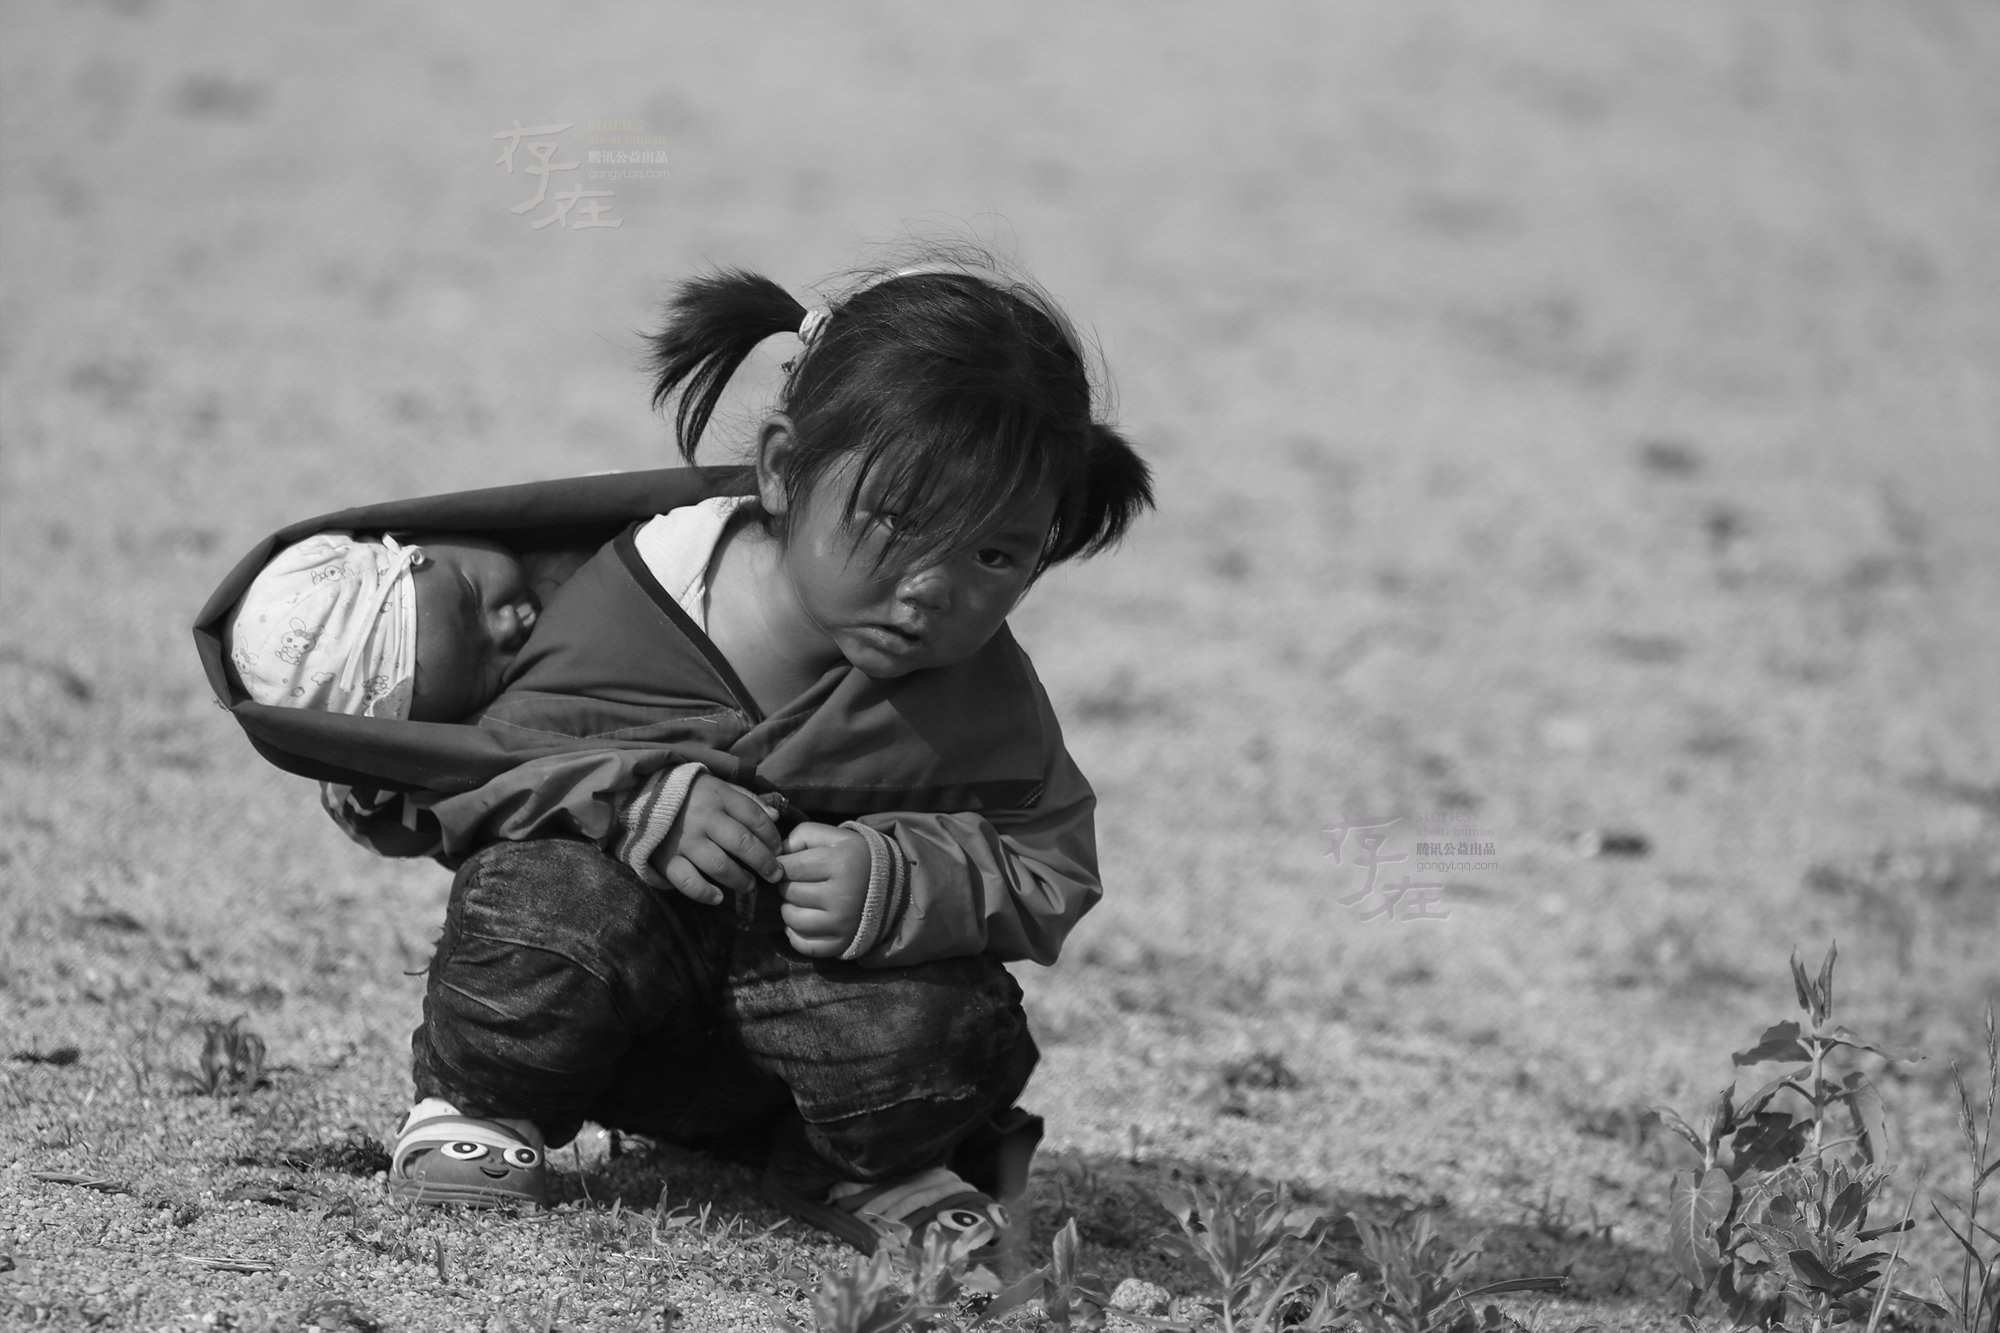 lost-childhood-ethnic-yi-minority-migrant-worker-children-jiaodong-kelp-harvesting-china-08